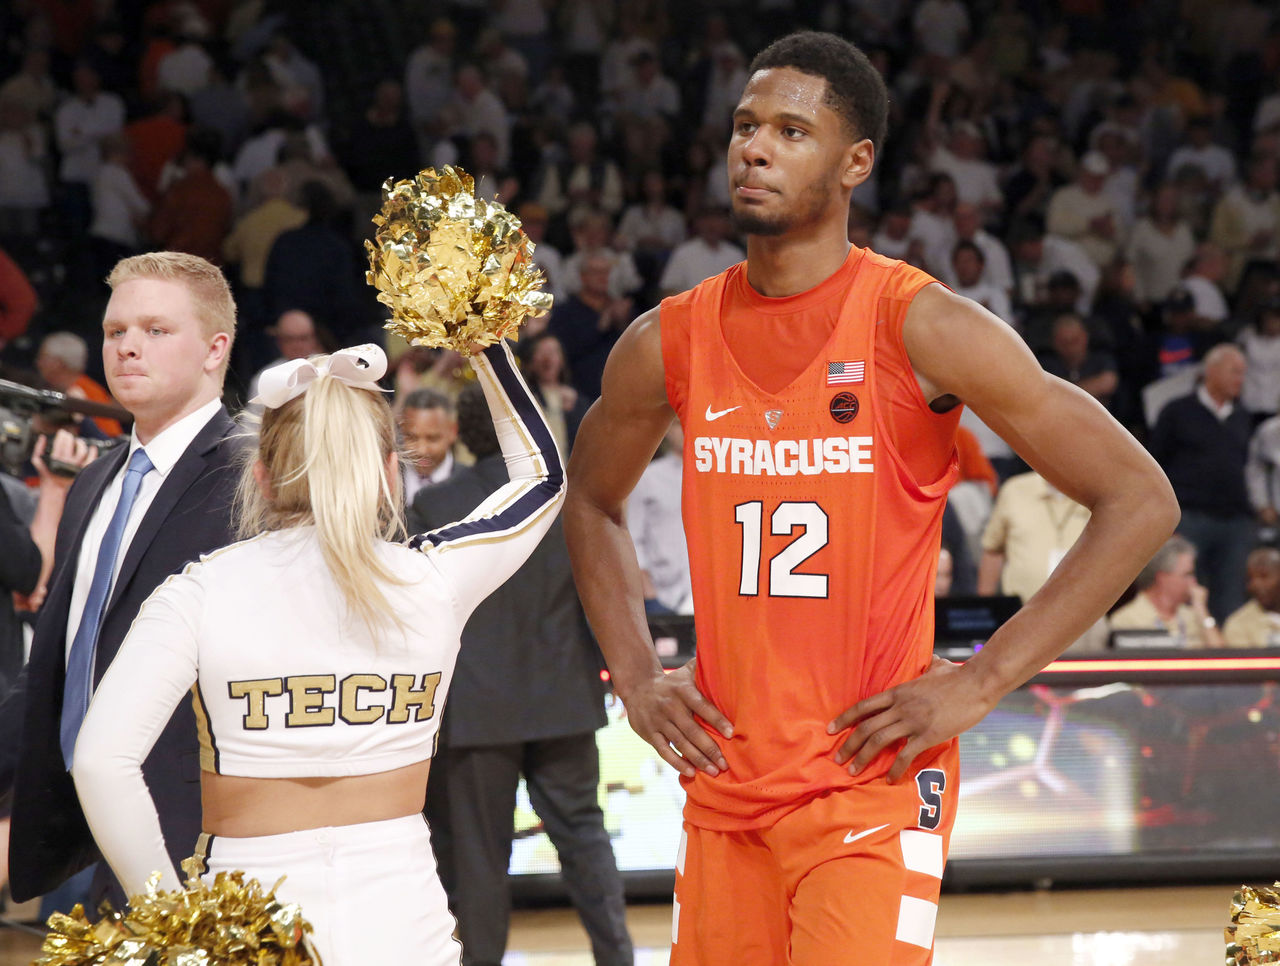 Cropped 2017 02 20t023256z 825502704 nocid rtrmadp 3 ncaa basketball syracuse at georgia tech